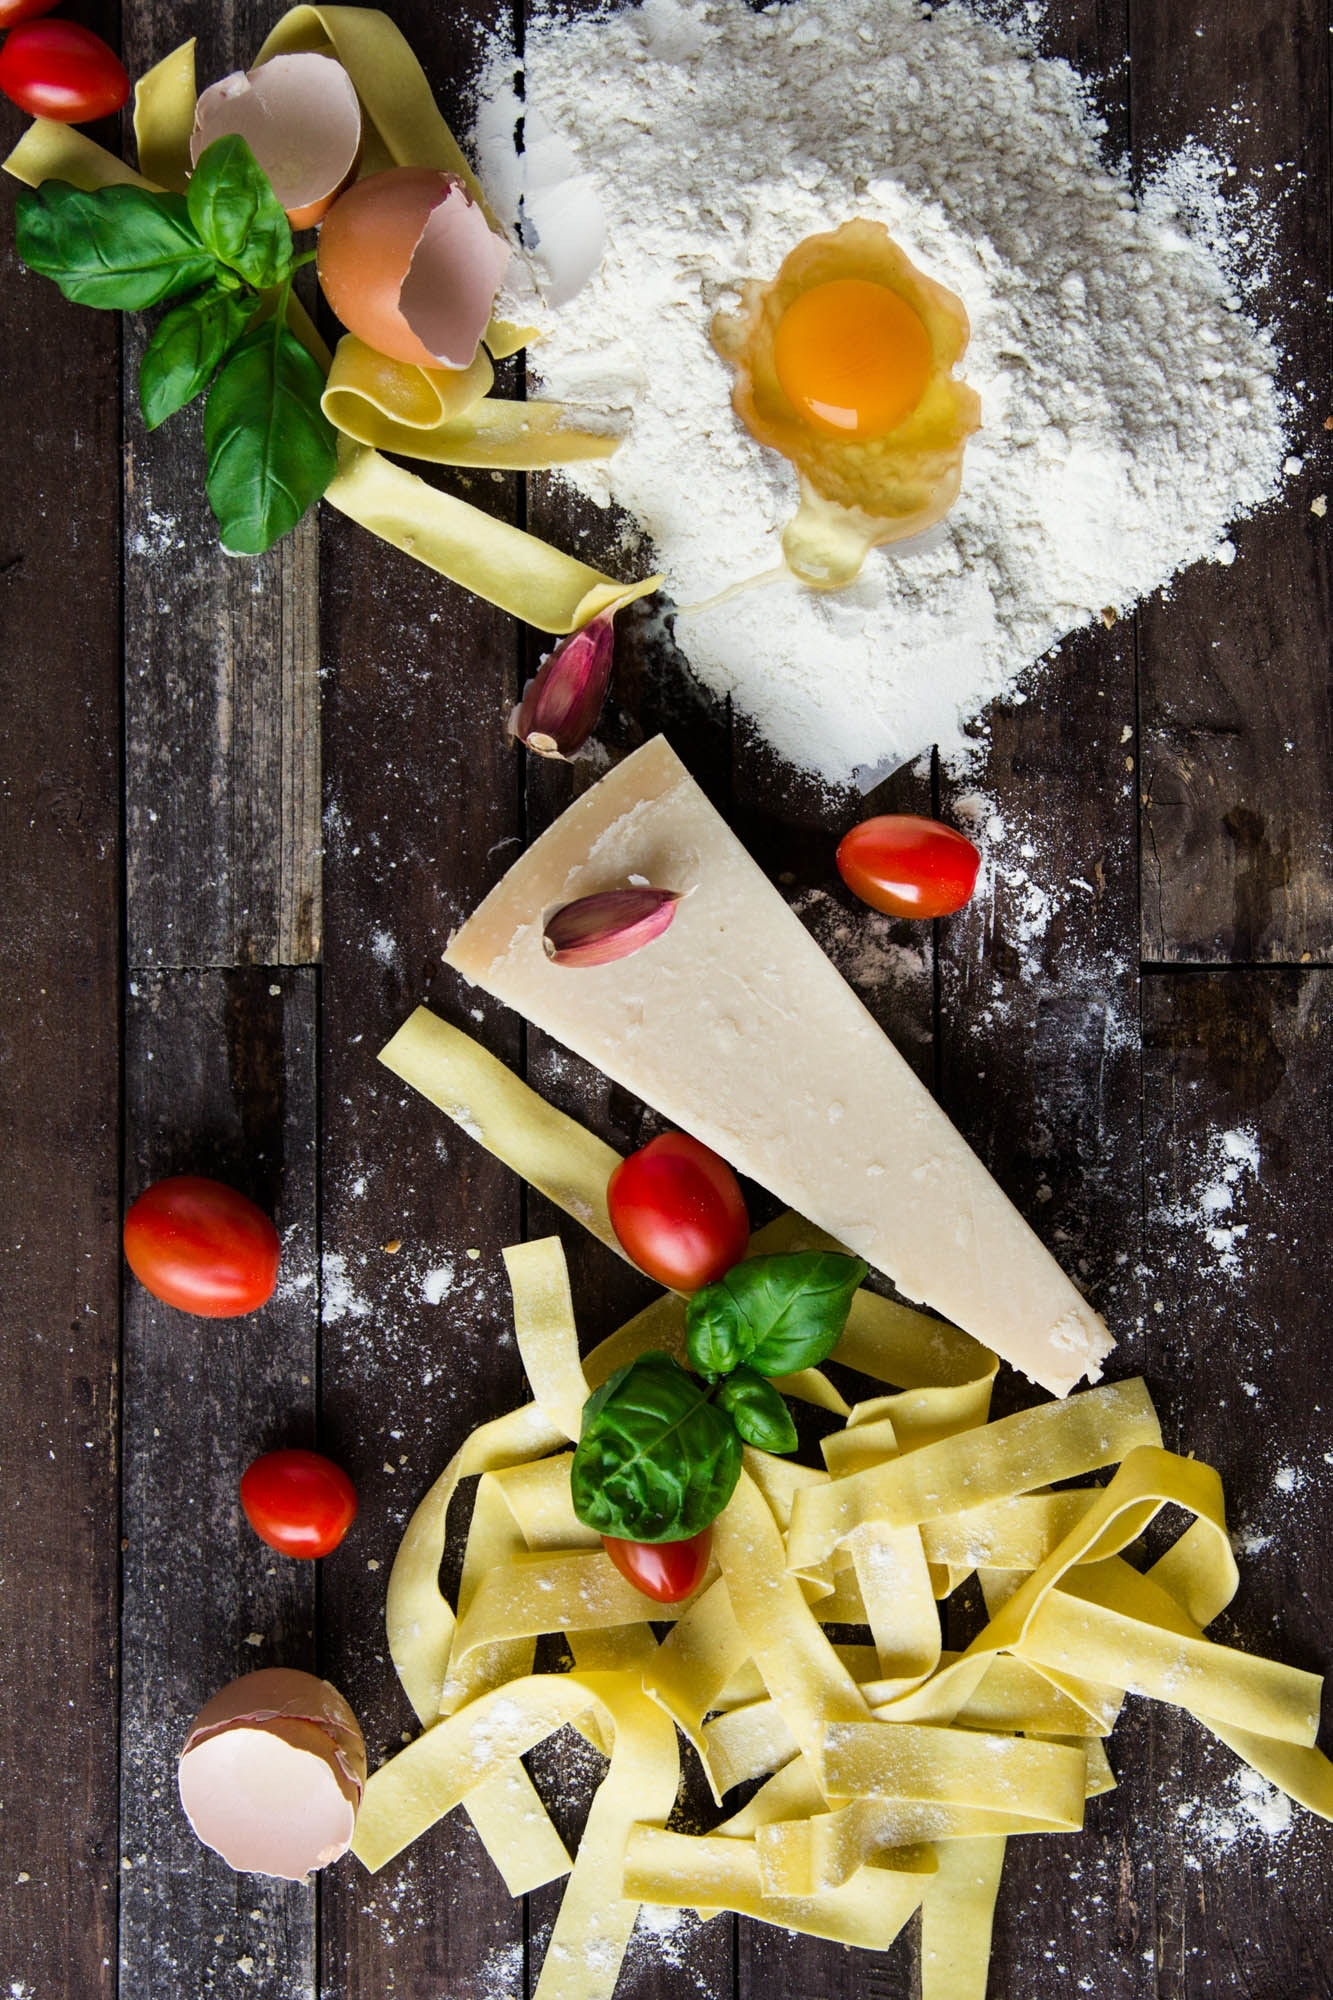 Pasta tomatoes and flour with egg shells on table photo